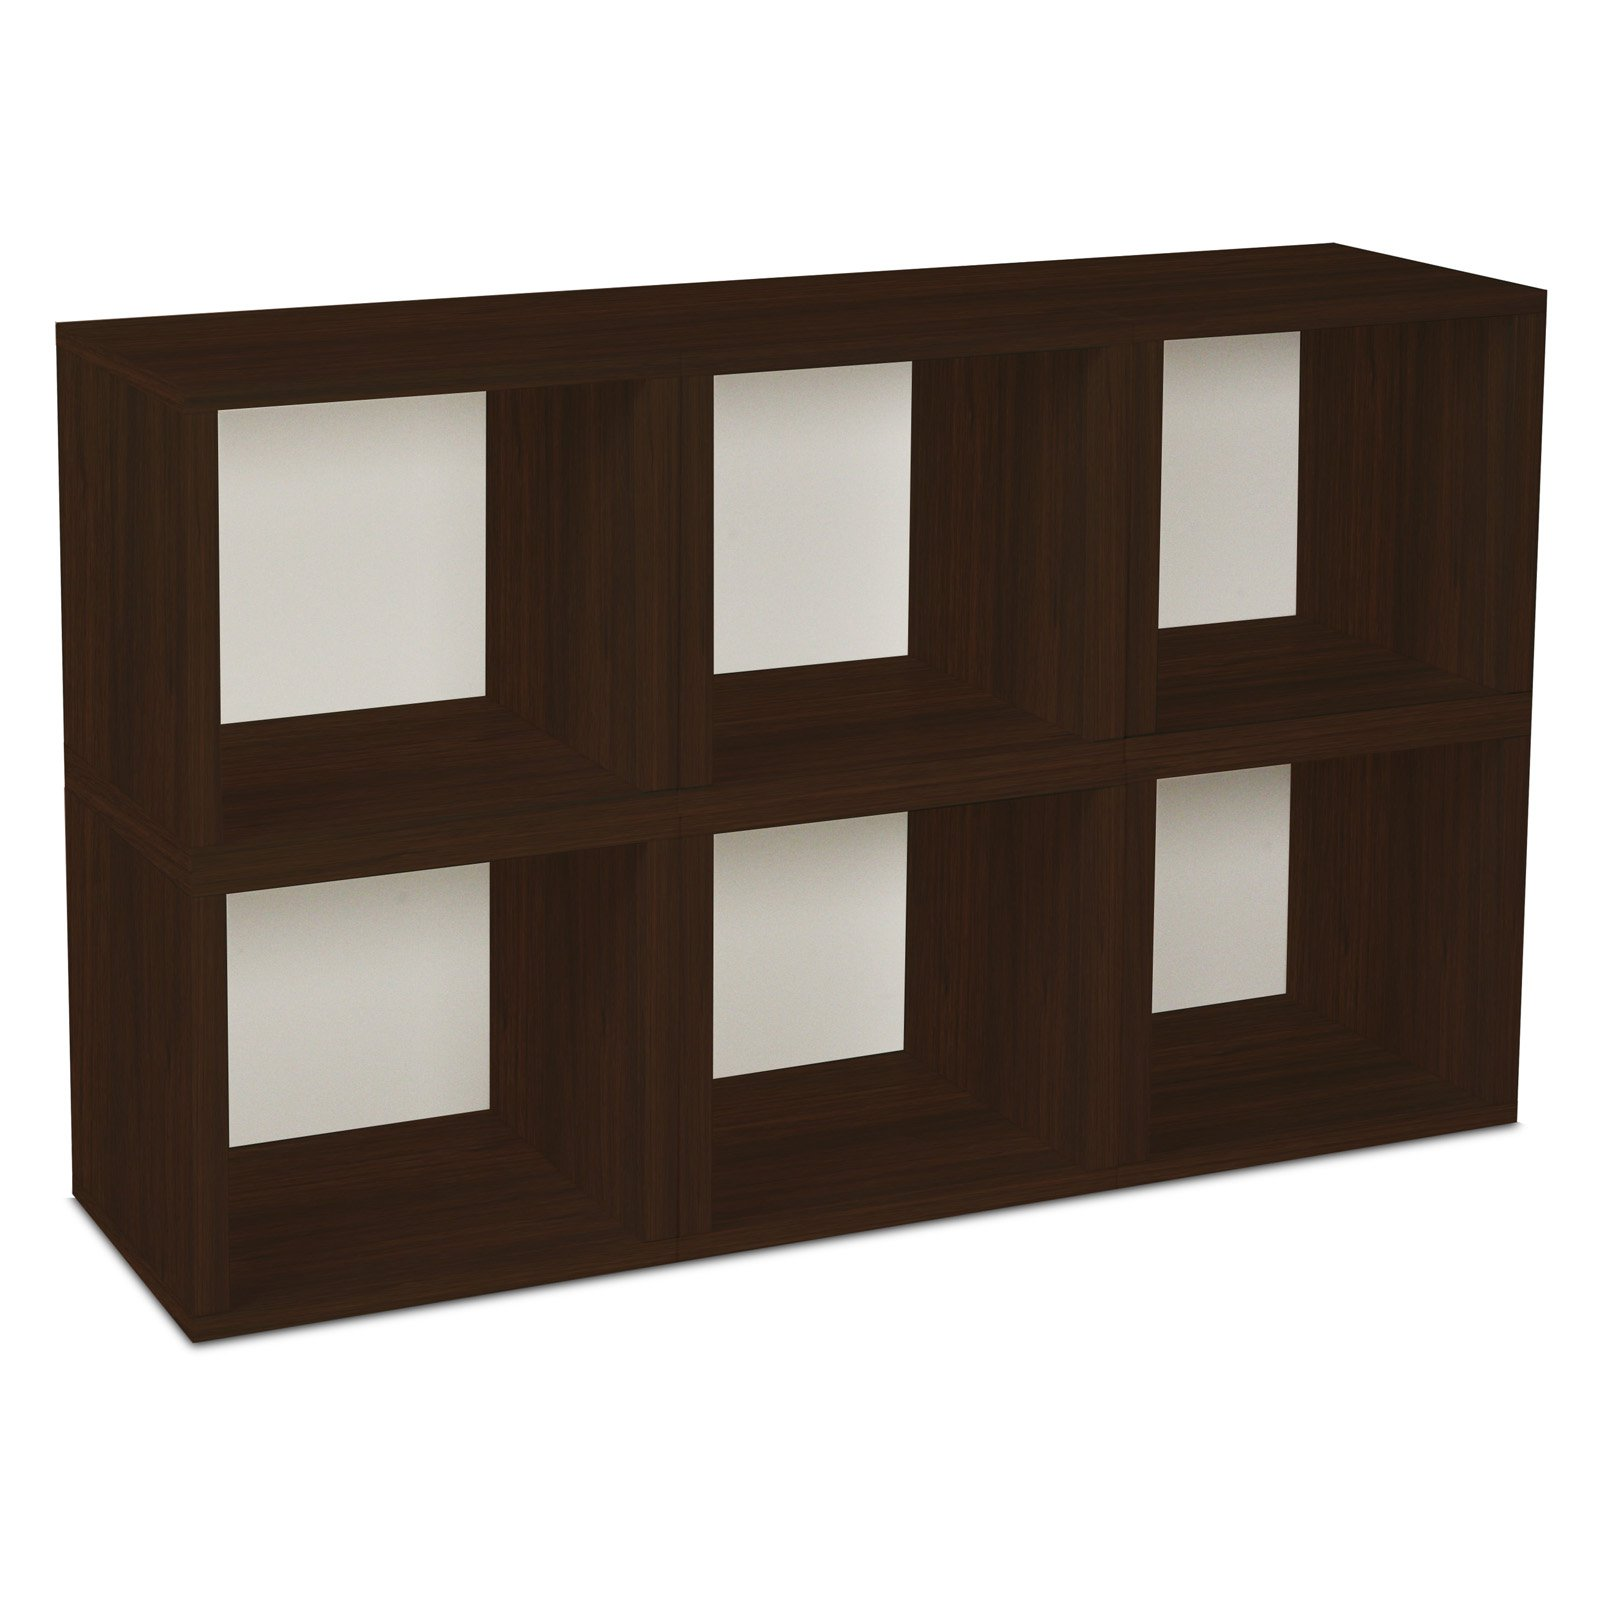 Way Basics Eco Stackable Modular Storage Cubes (6 Pack), Espresso